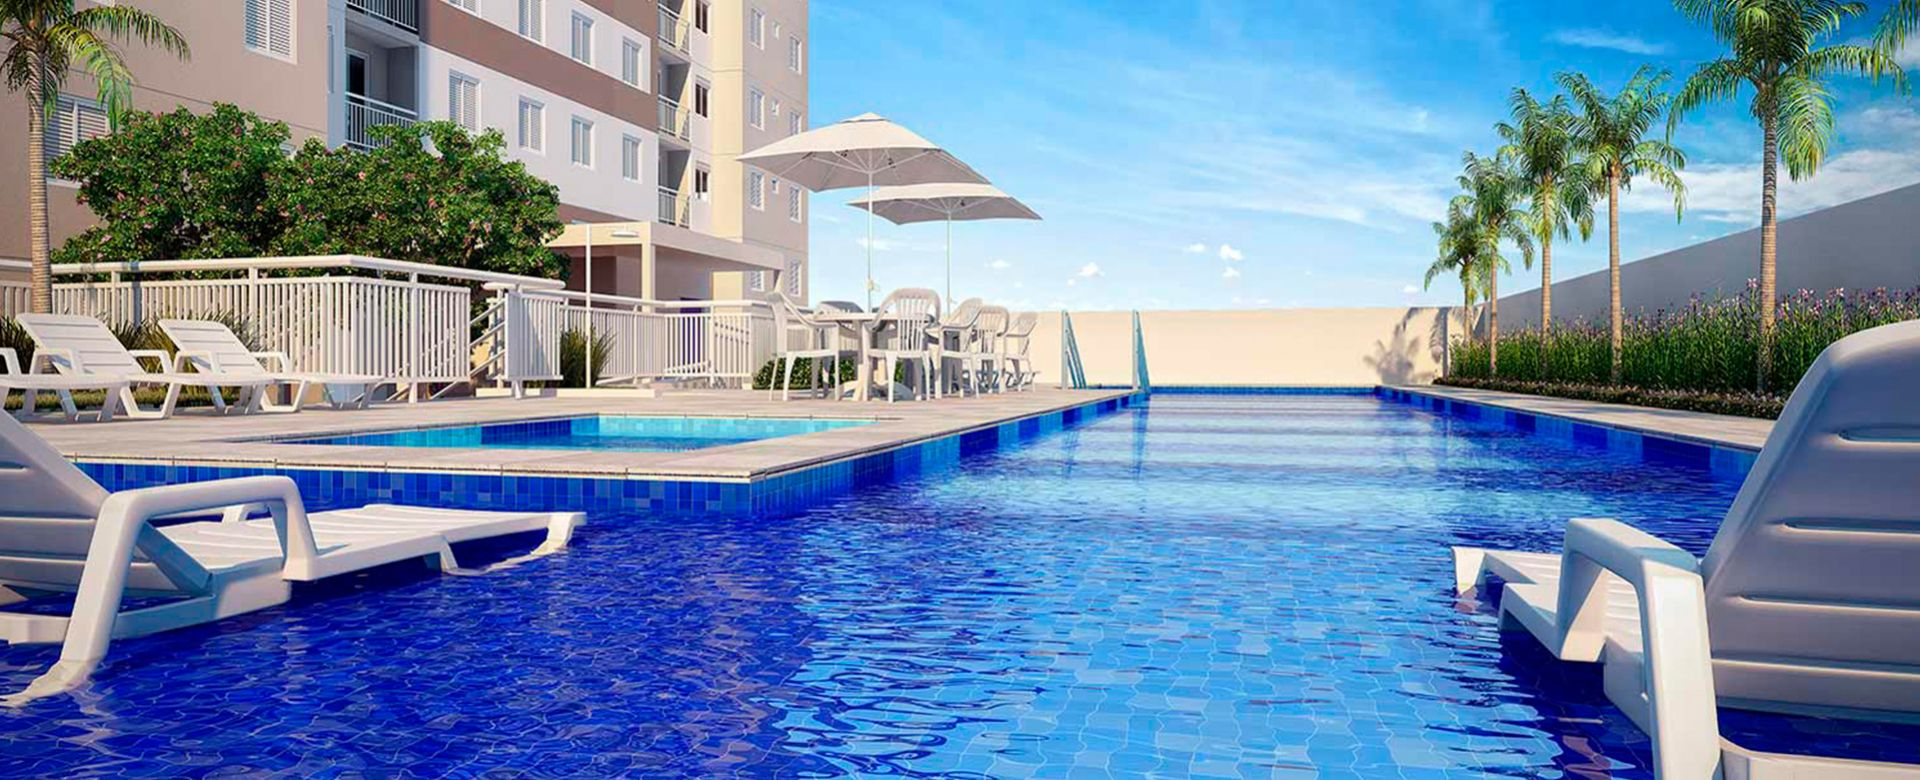 Max Clube Residencial, foto 1